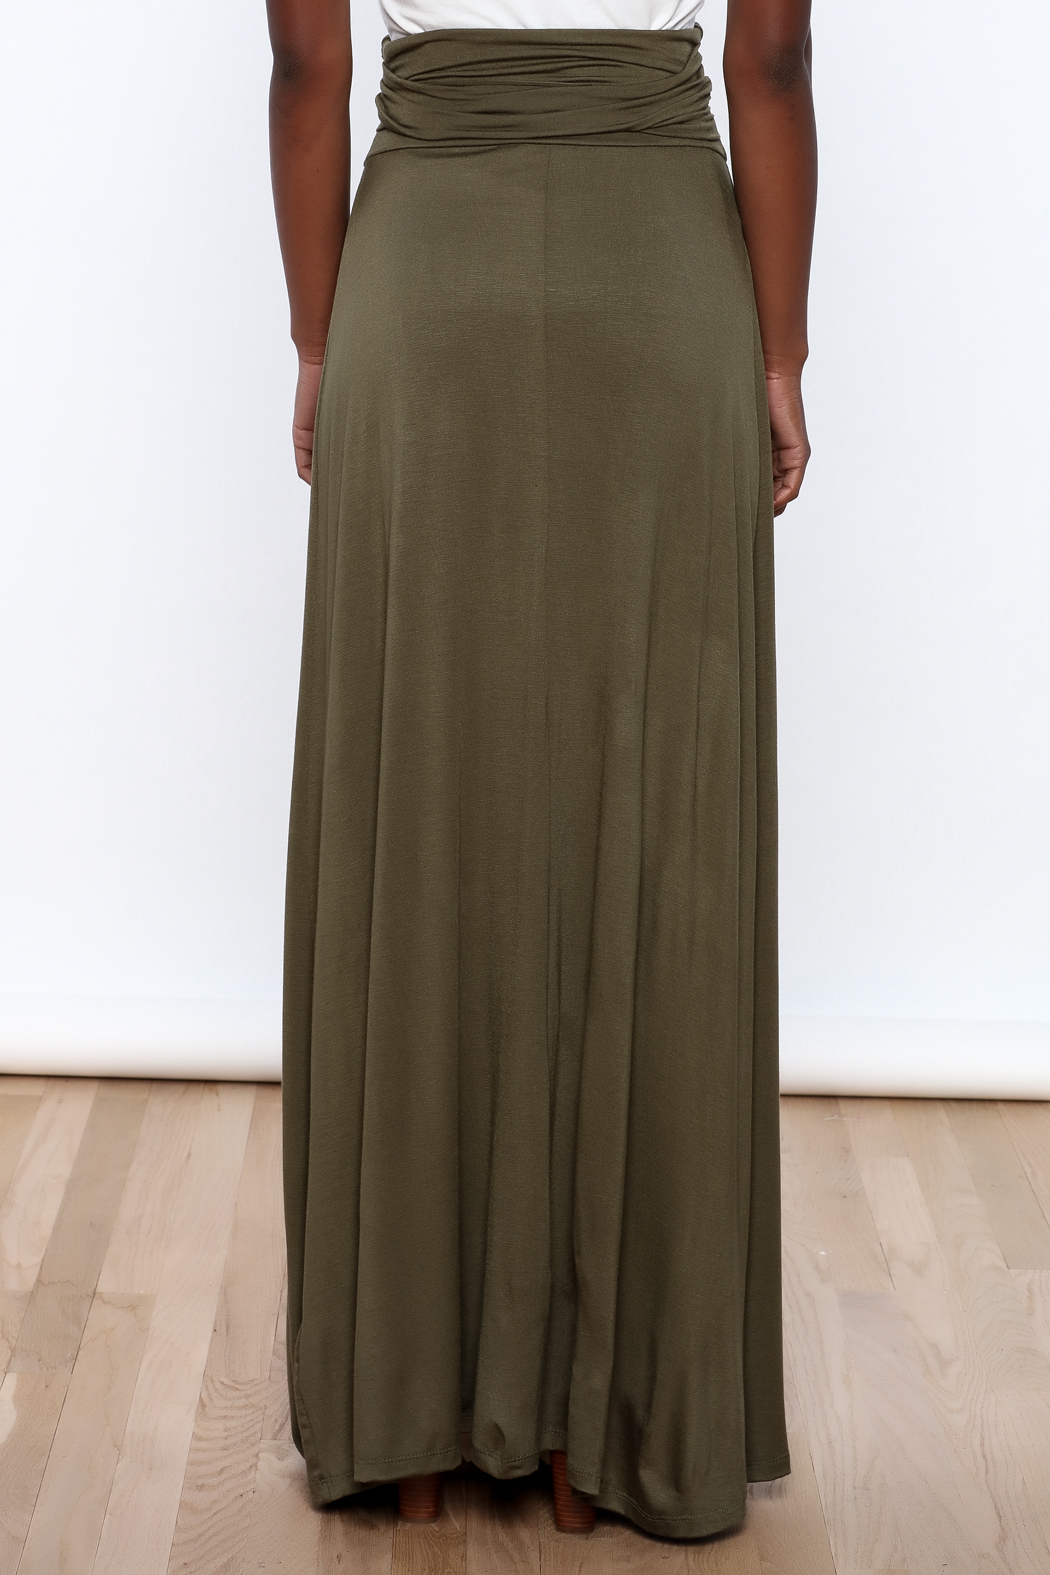 blue mint olive maxi skirt from california by mandyz